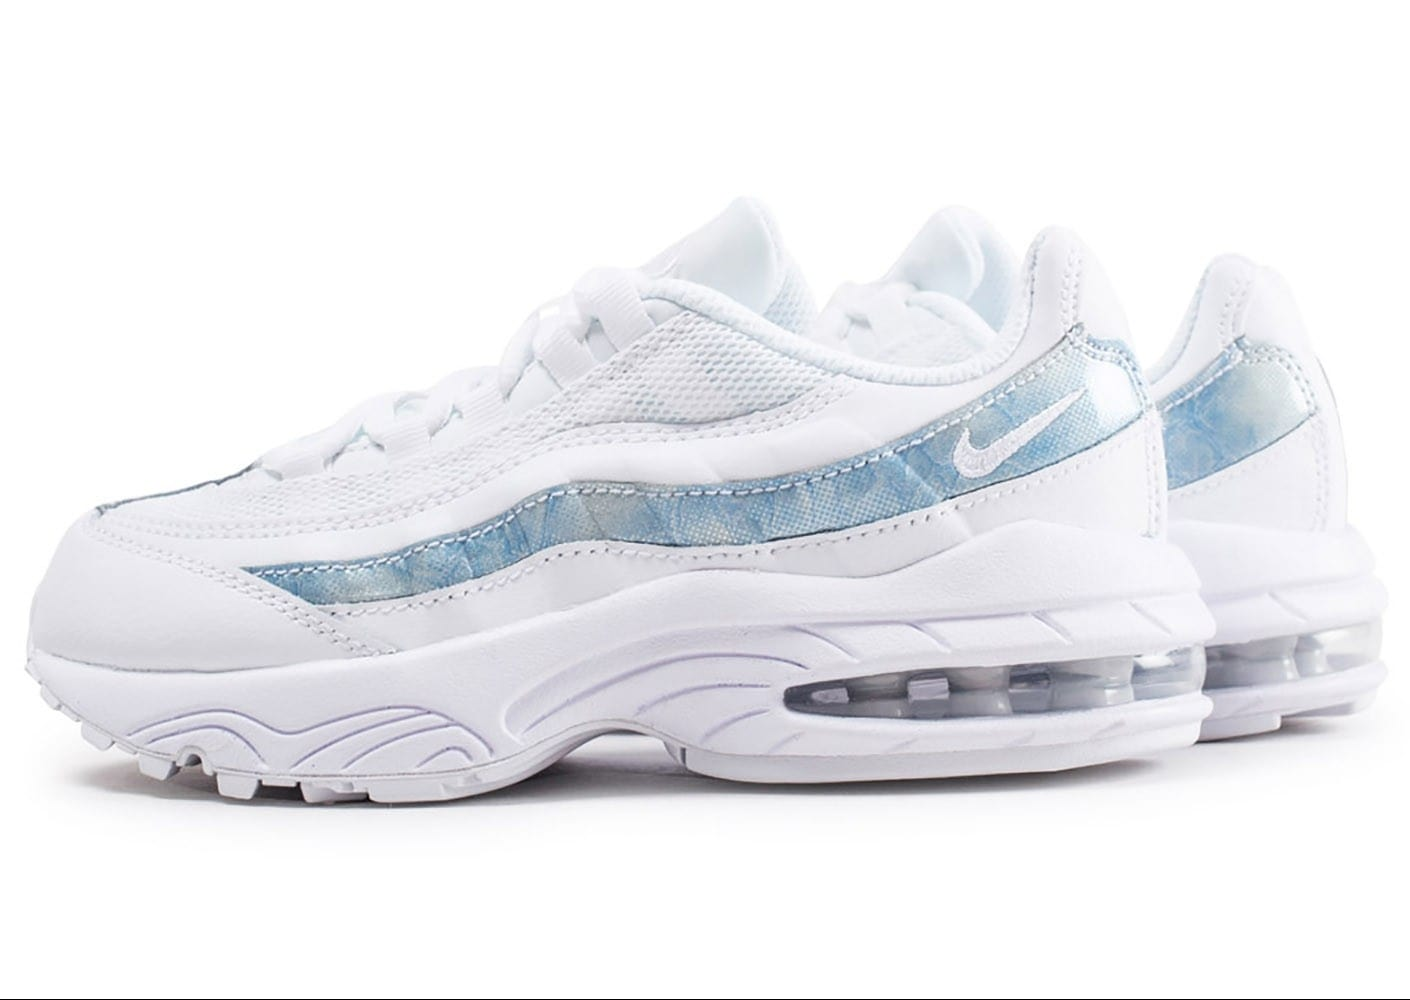 3a1002c6f80 where to buy nike air max 95 violet bleu ciel 43f12 2762c